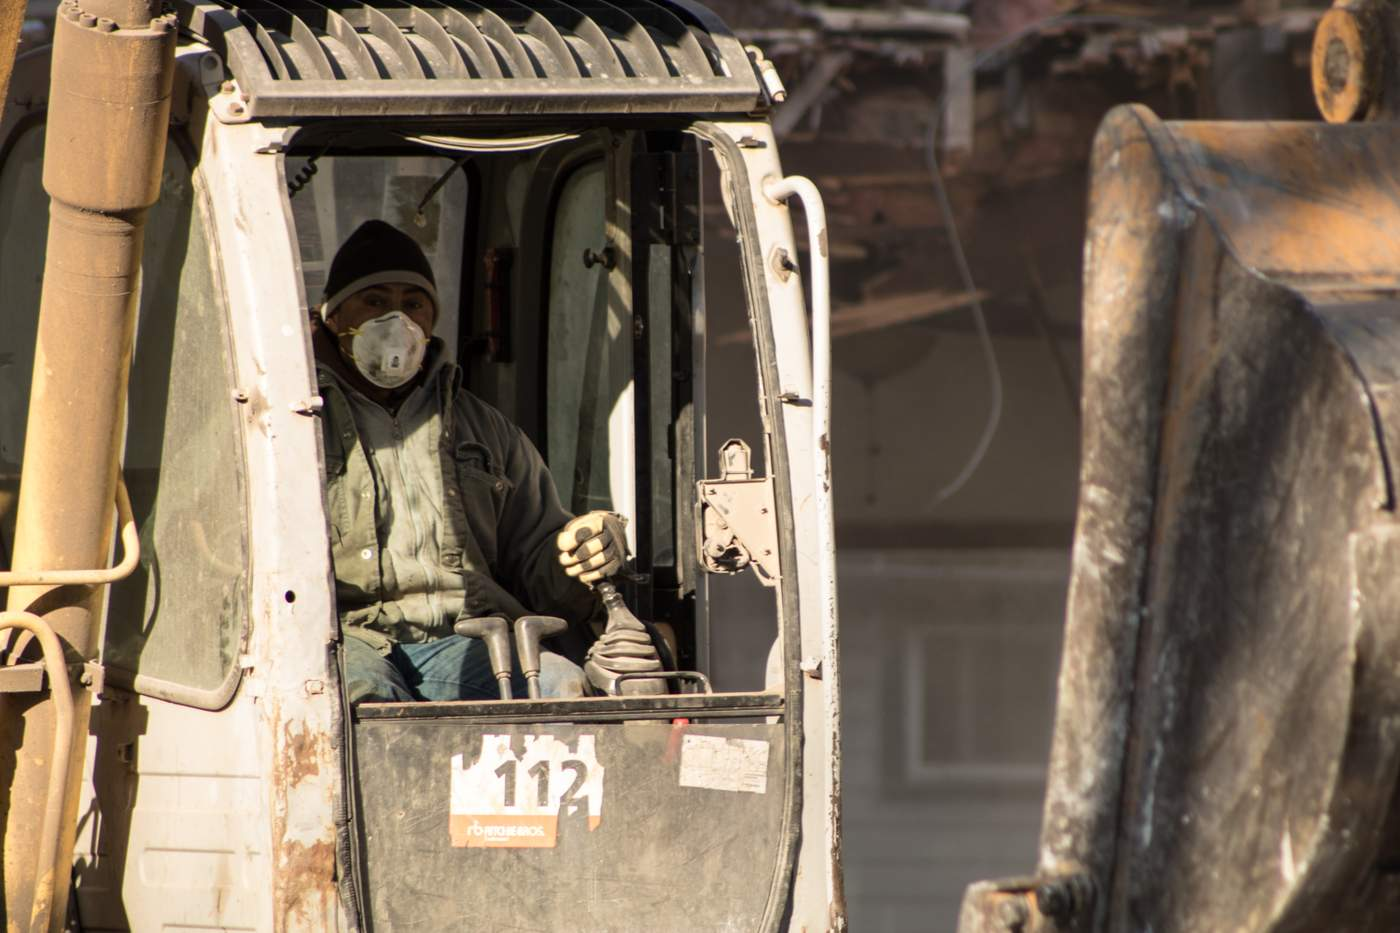 Workers are often those who suffer most from contaminant-related diseases because of weak regulation and enforcement, according to a 2015 investigation from the nonprofit Center for Public Integrity (Photo: Manny Ramos).